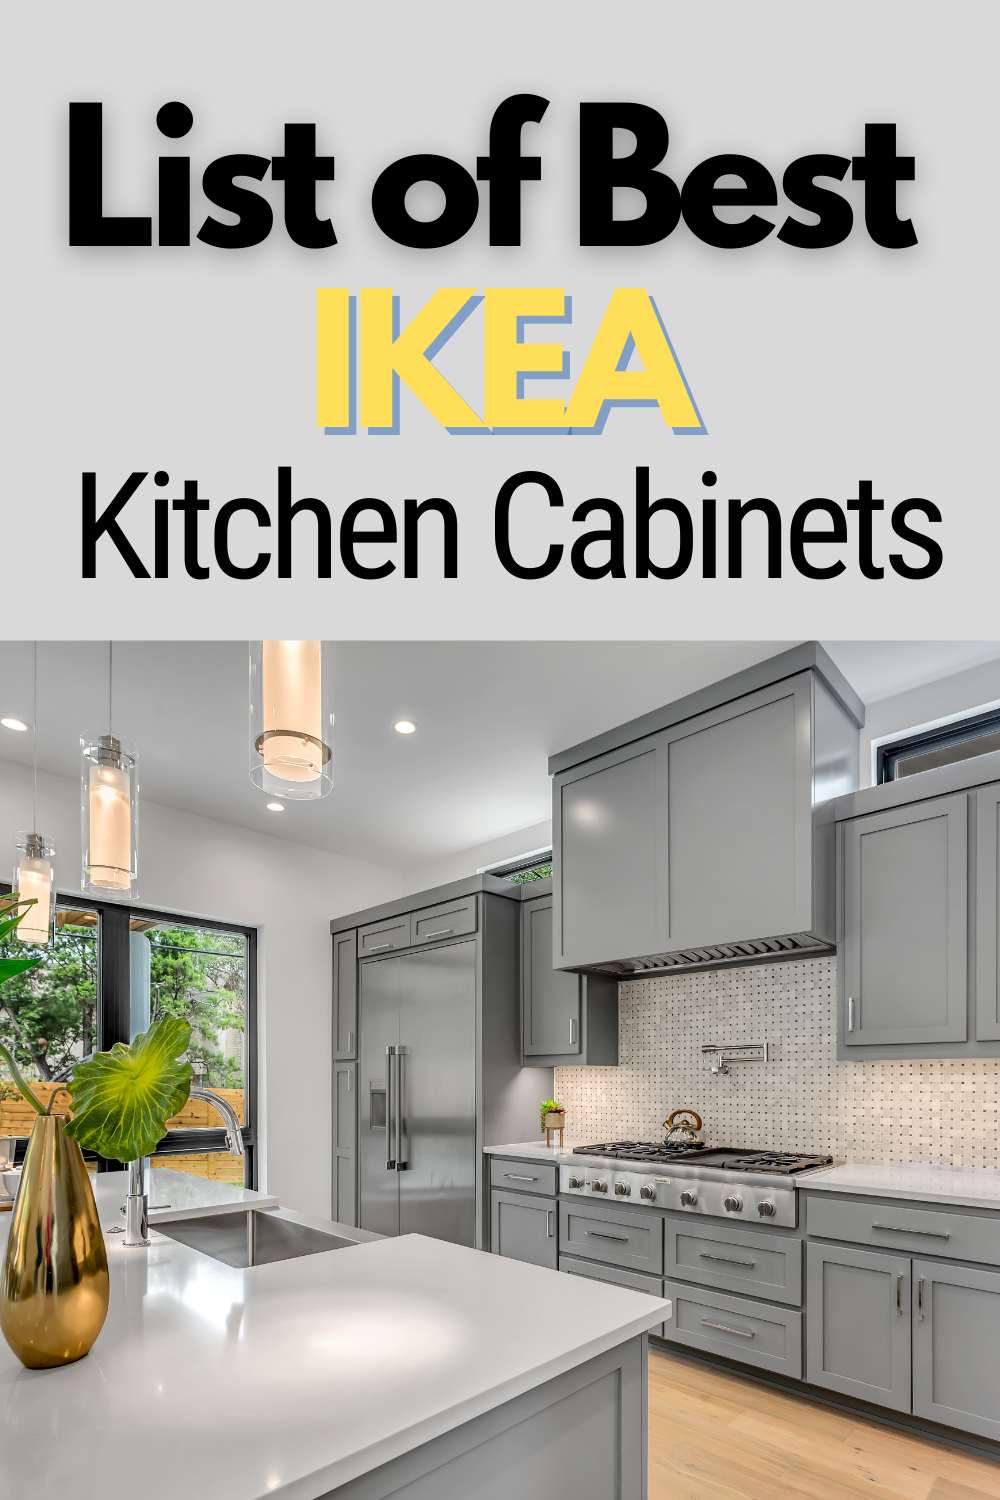 Best Ikea Kitchen Cabinets In 2020 Ikea Kitchen Cabinets Best Ikea Kitchen Cabinets Reviews